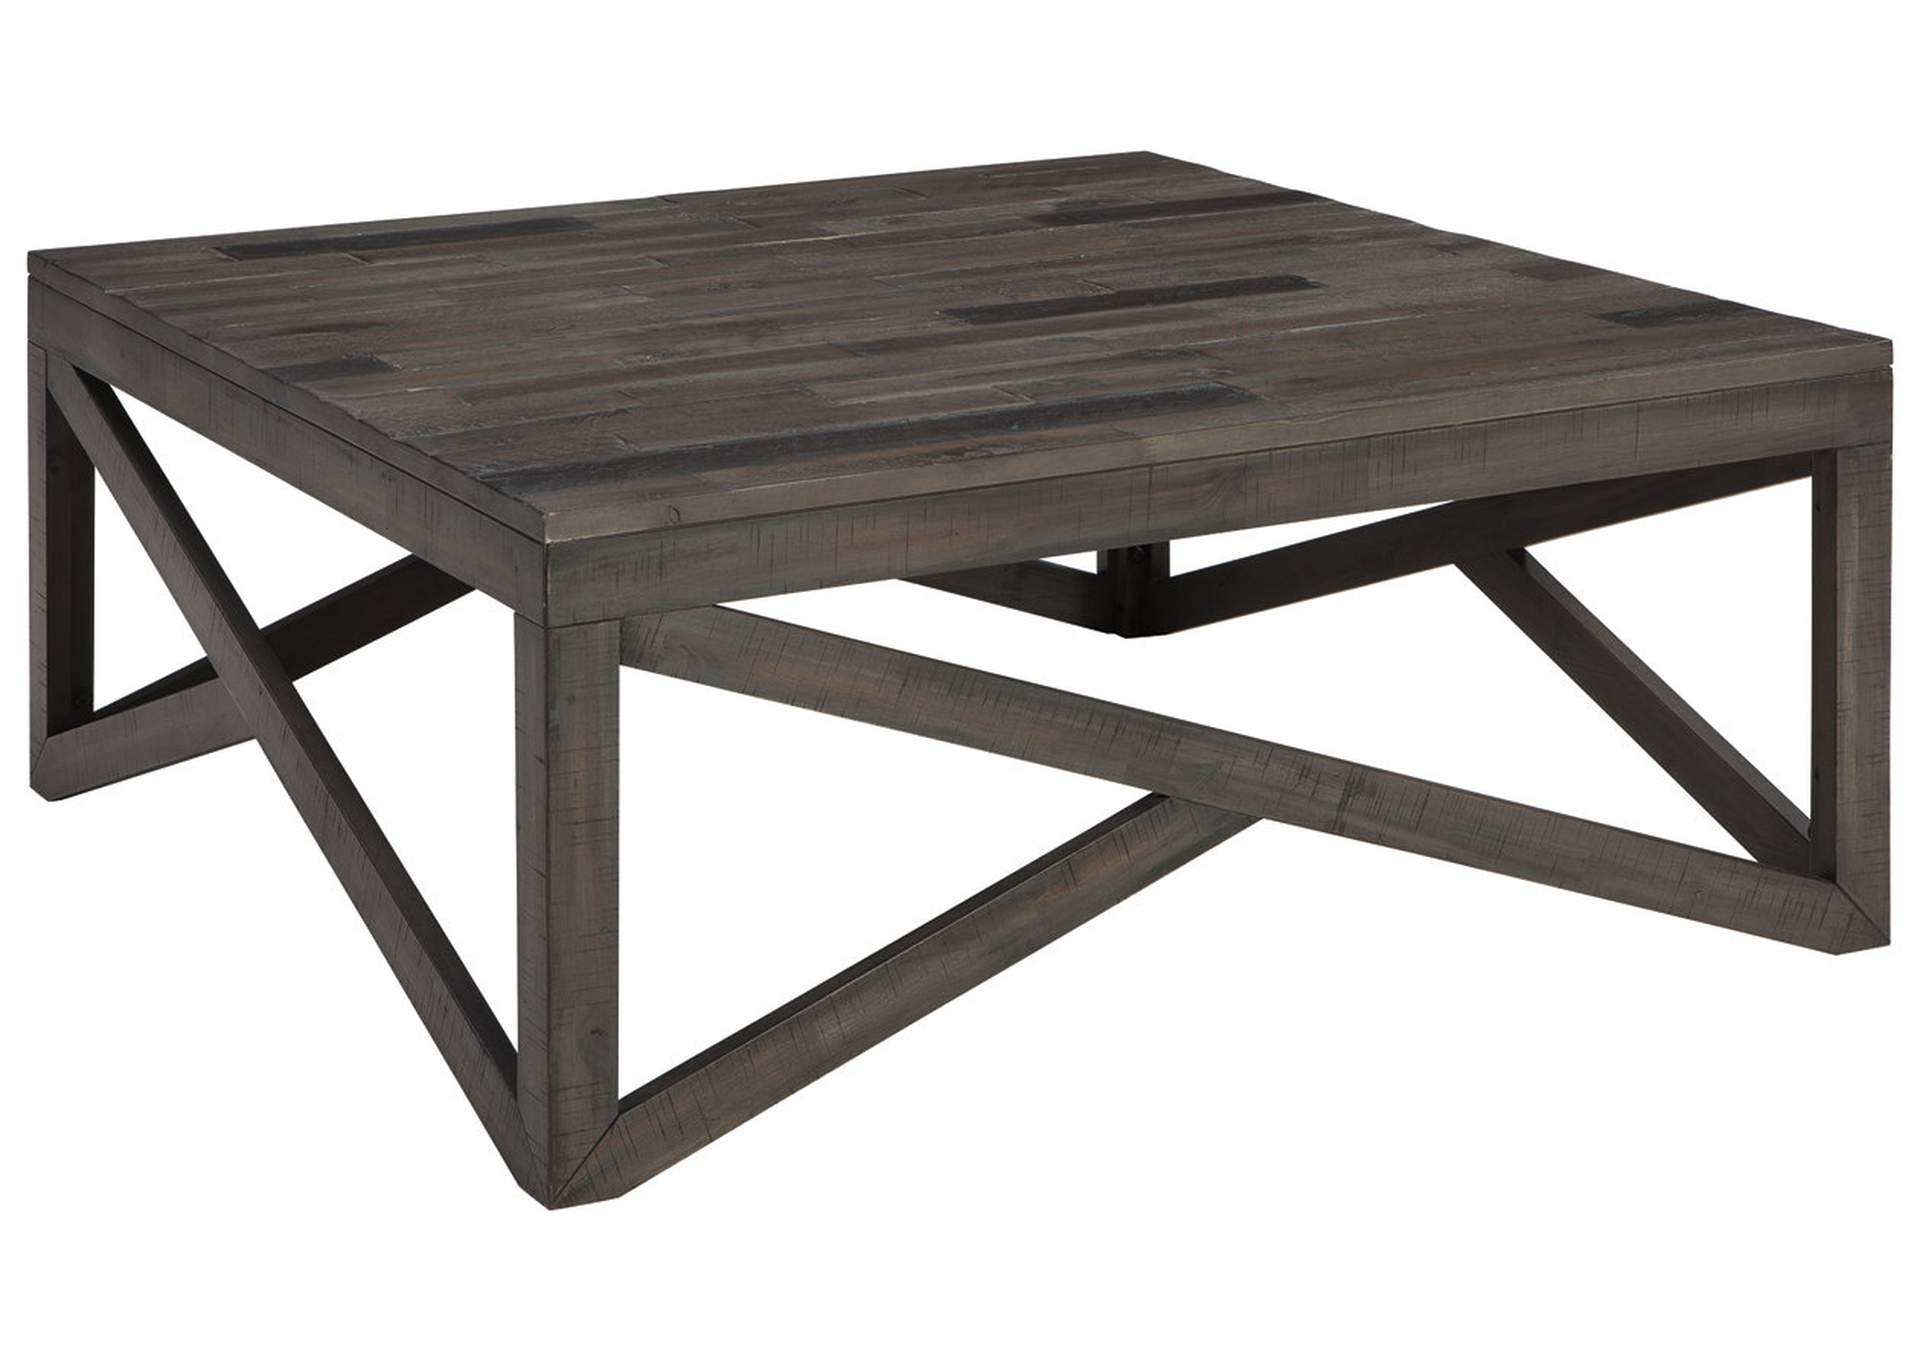 Haroflyn Gray Square Cocktail Table,Direct To Consumer Express